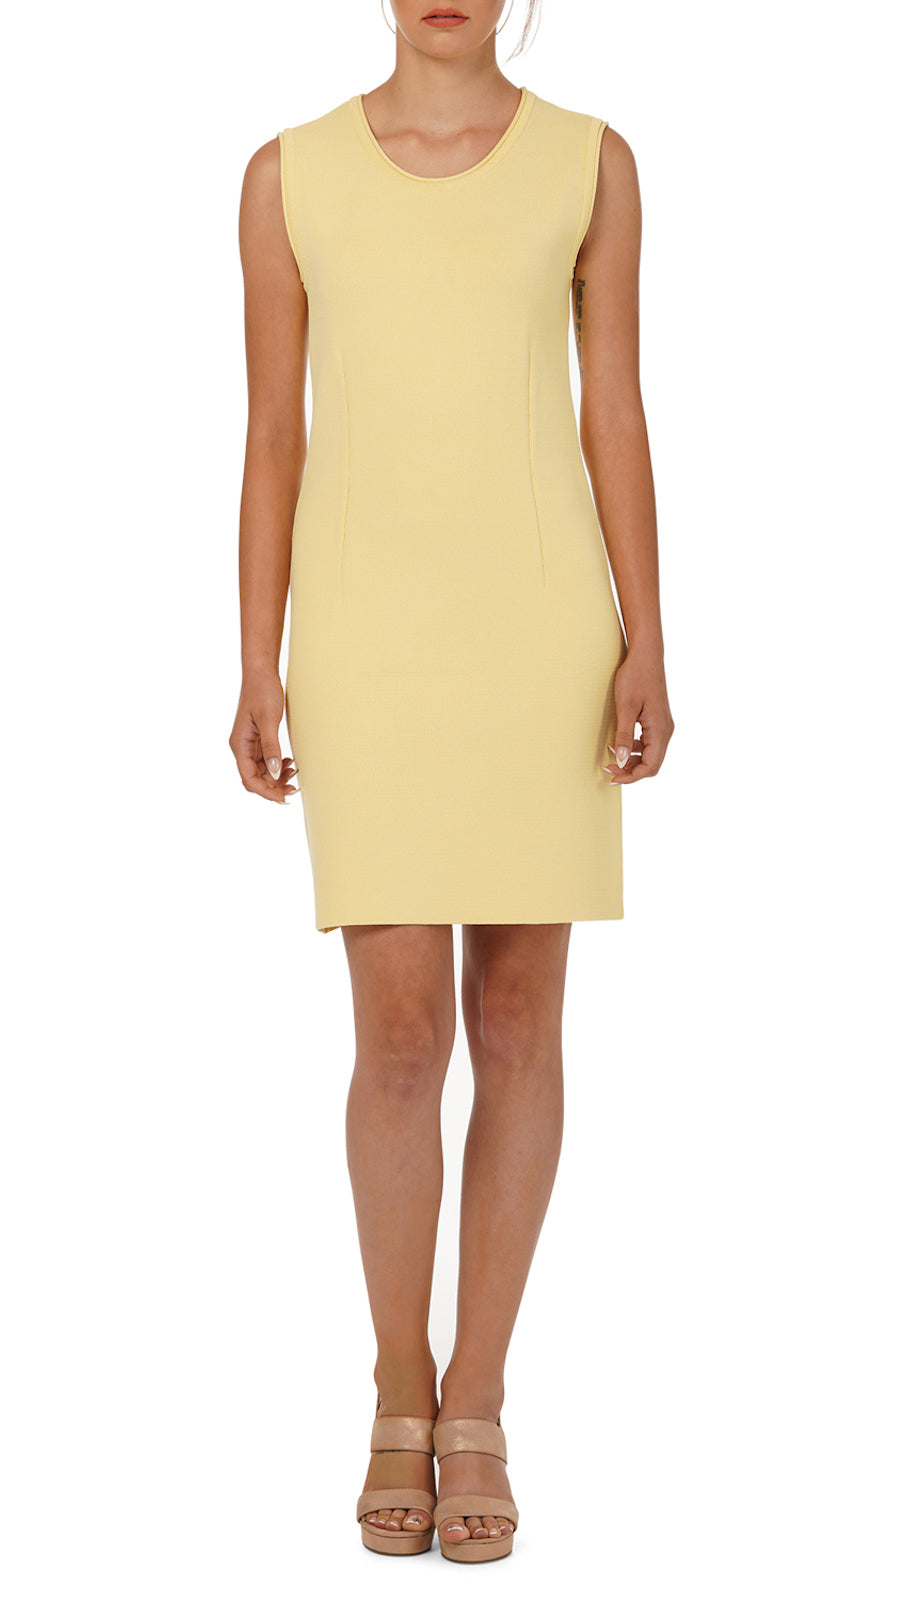 Susan Milano-Knit Dress, Yellow